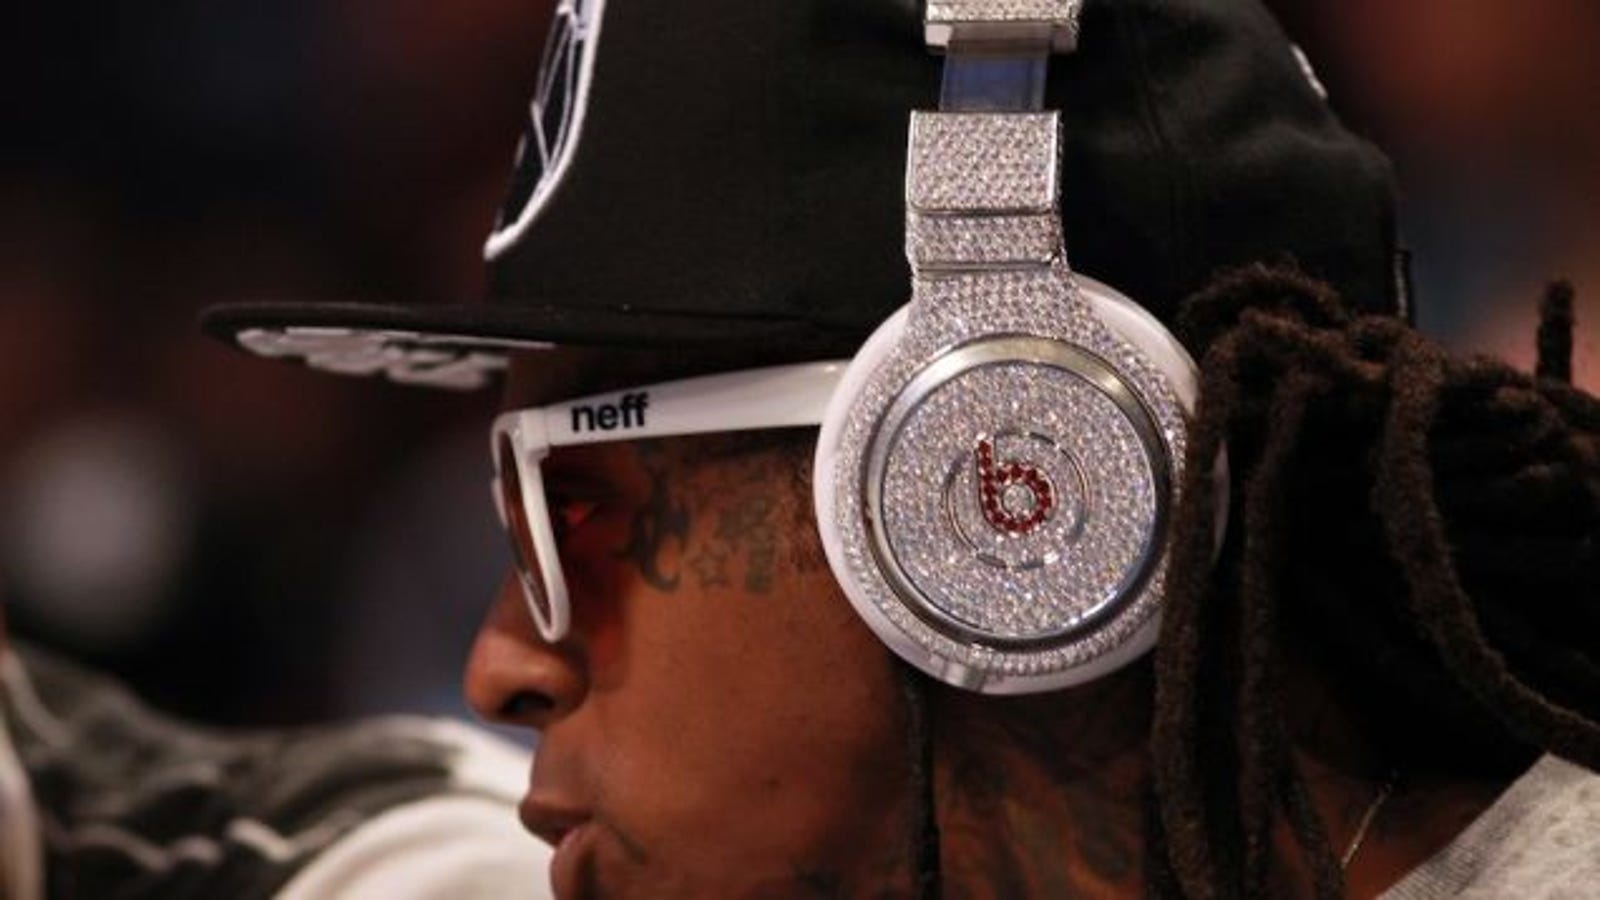 earbuds vogek - Report: Apple Is Getting Ready to Buy Beats for $3.2 Billion